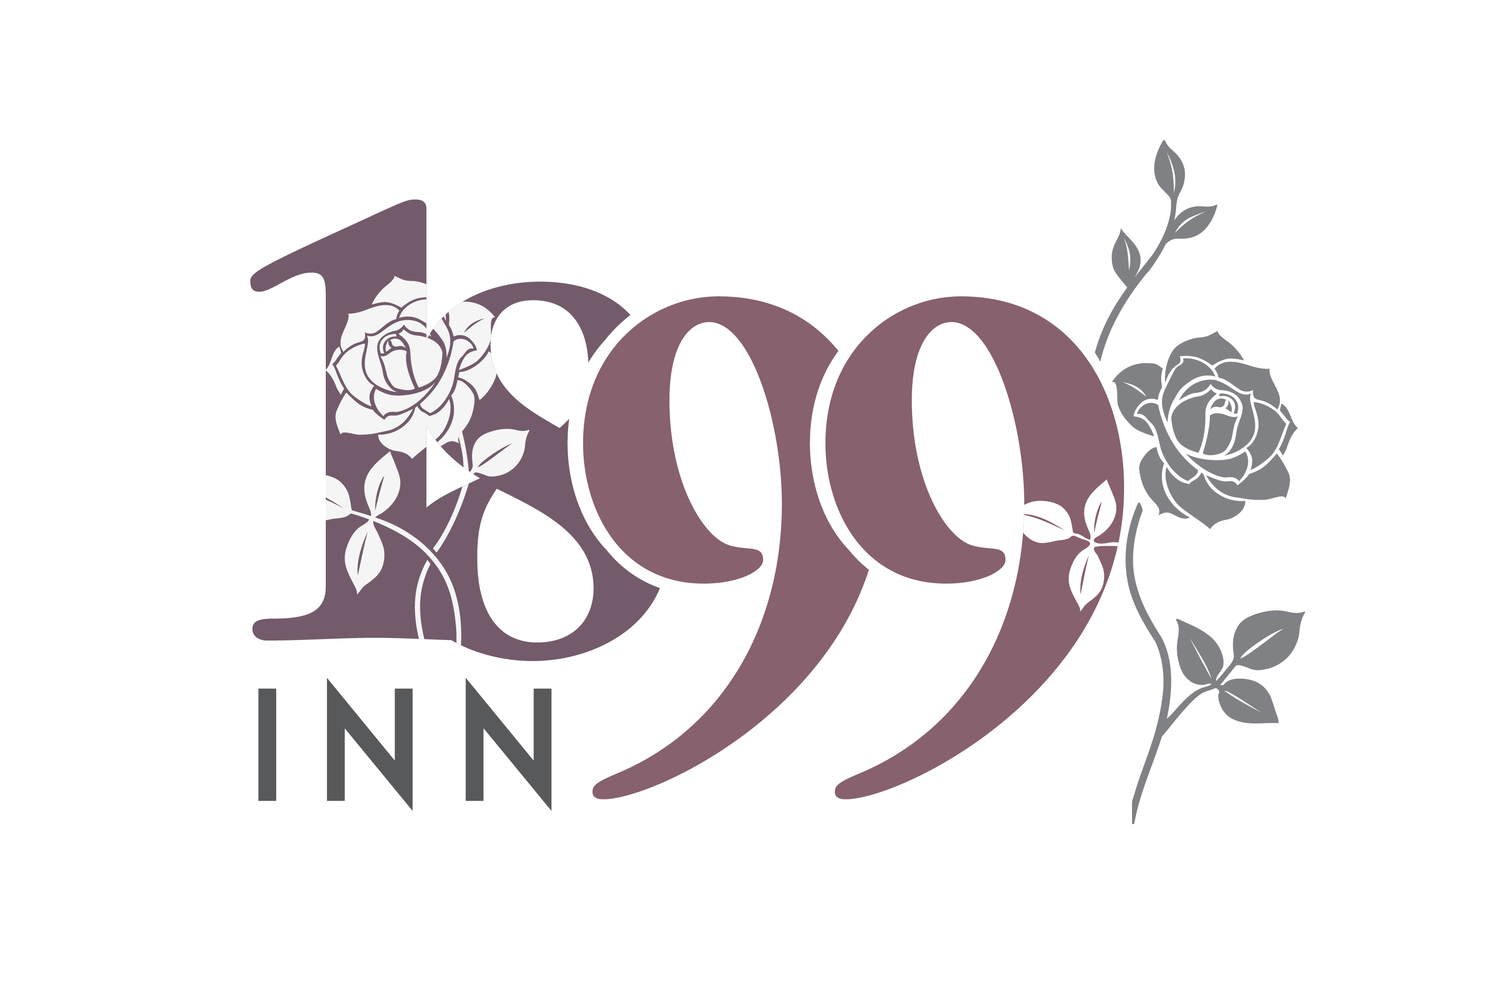 1899 Inn - Black Hills B&B